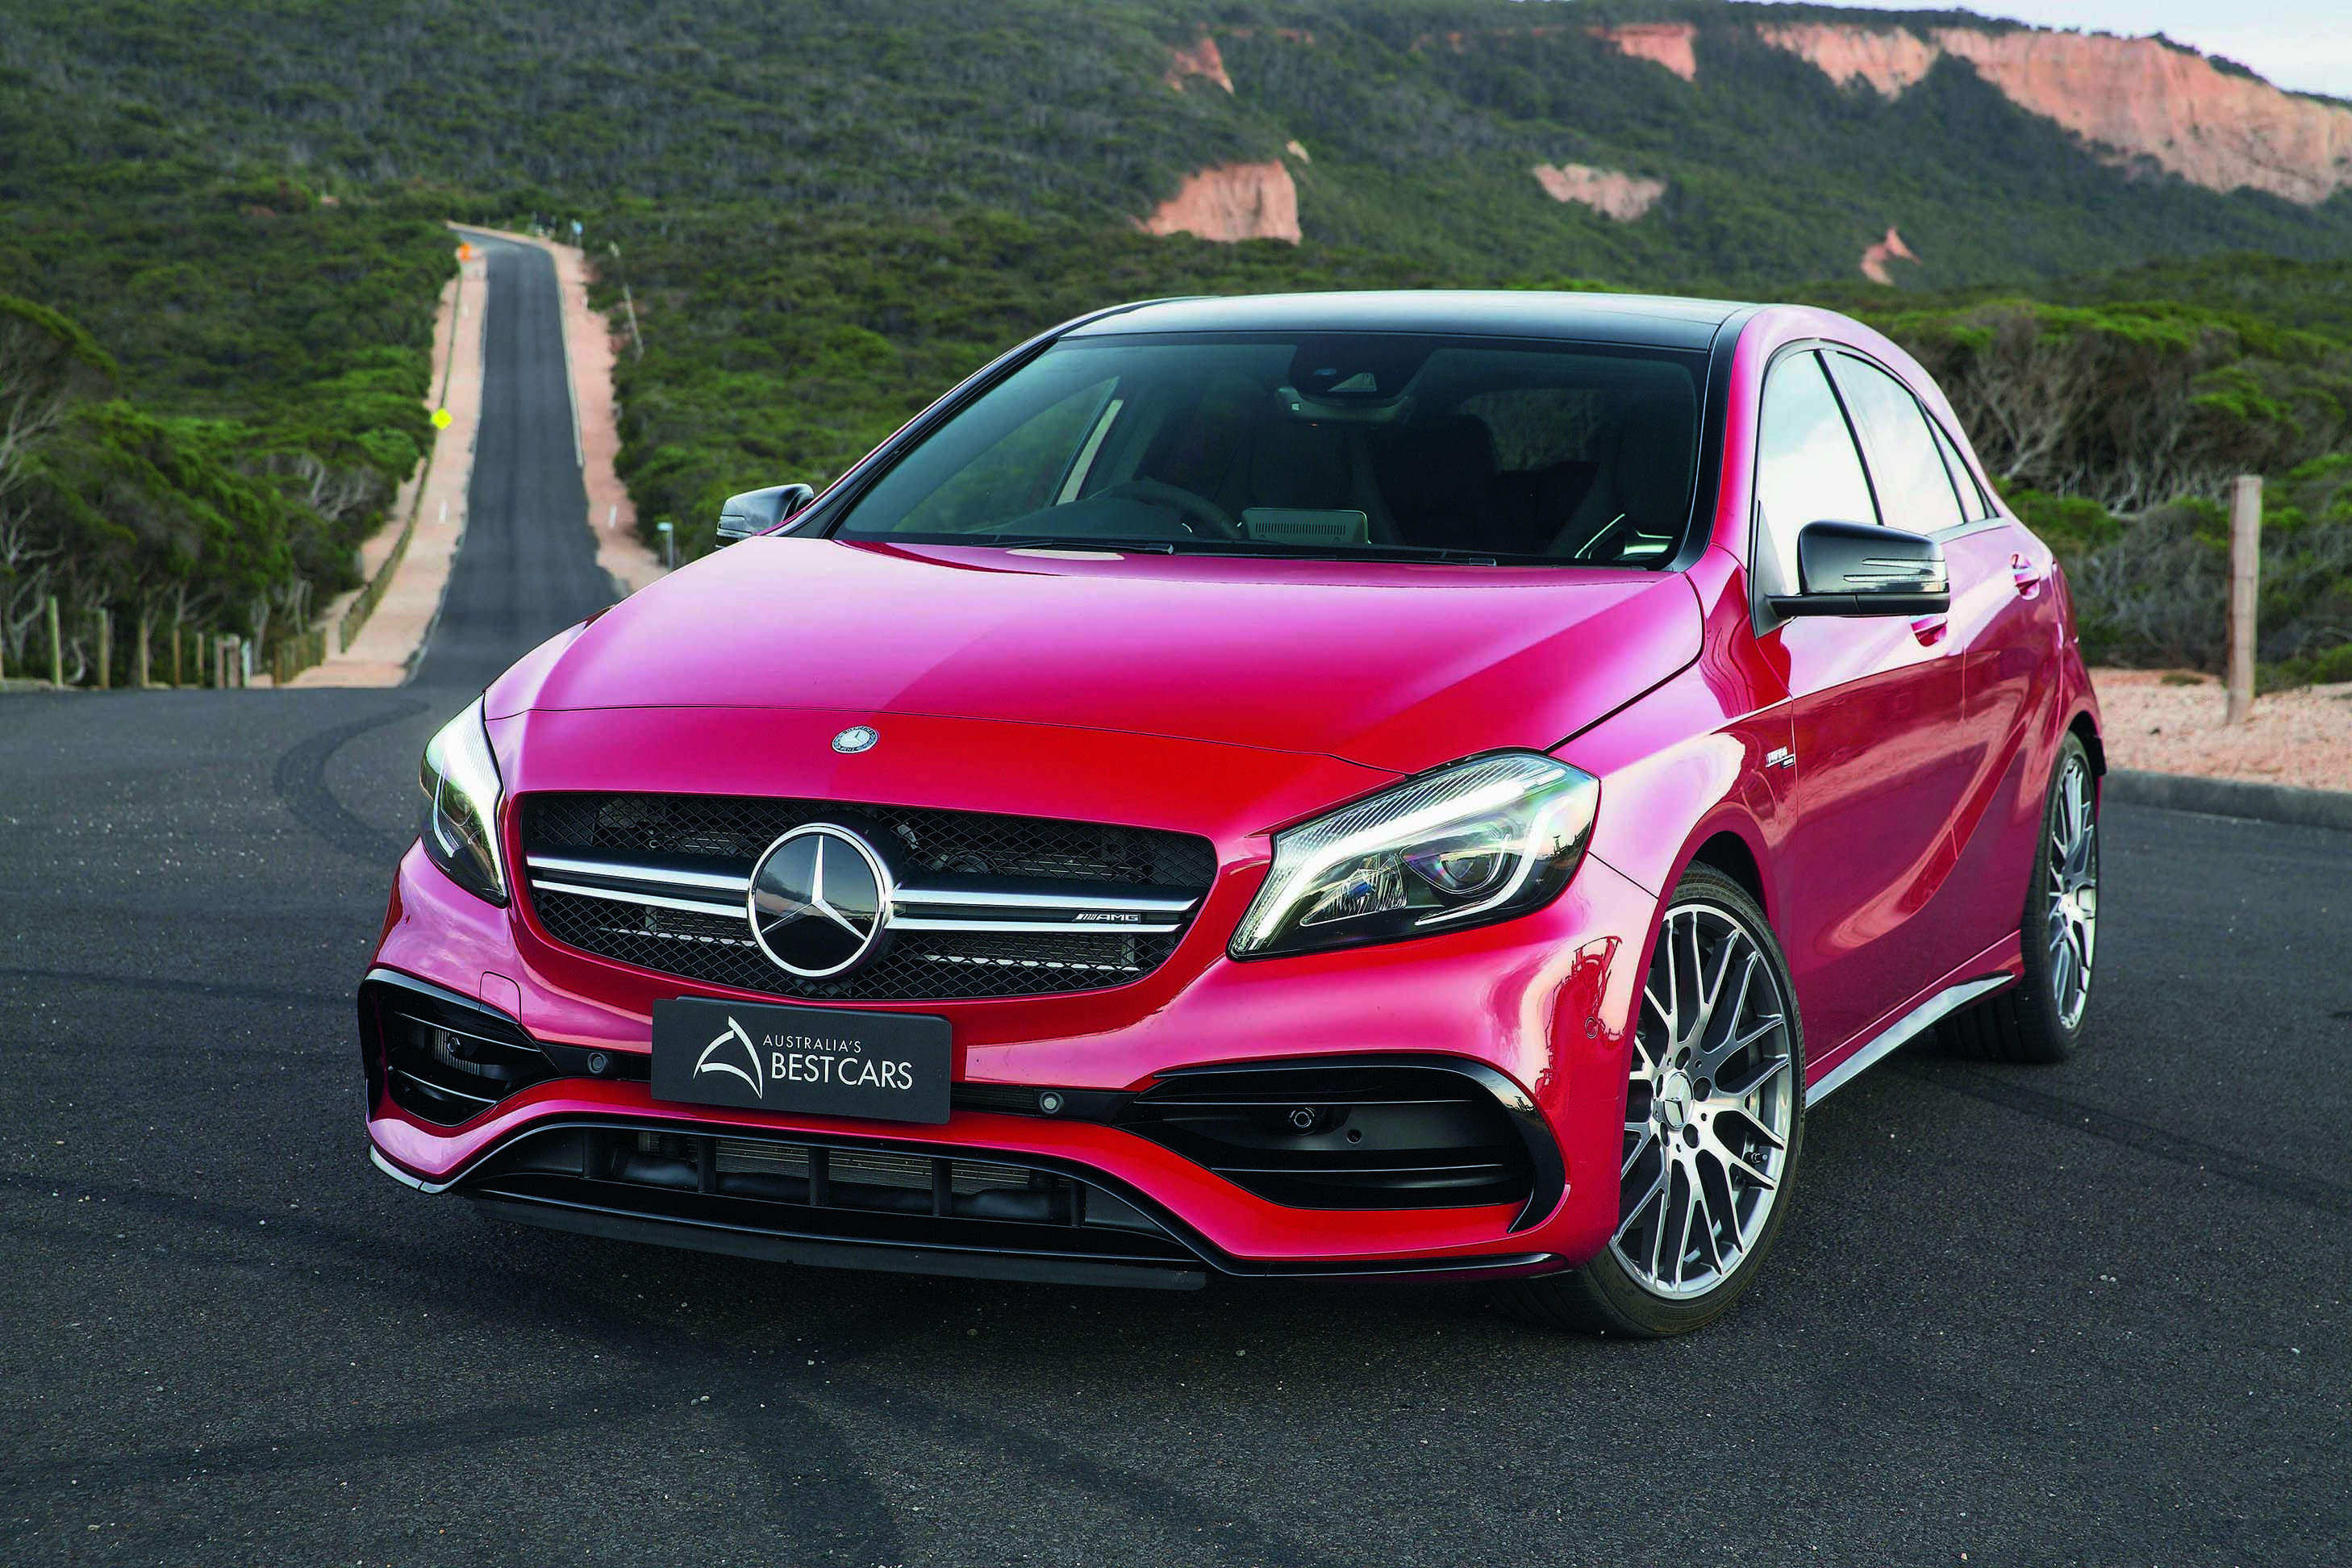 Beautiful Australiau0027s Best Cars 2015/2016 Awards. Winner   Best Sports Car $50 $100K  Winner   Mercedes Benz A 45 AMG. RoyalAuto March, 2016. Australiau0027s Best  Cars ...